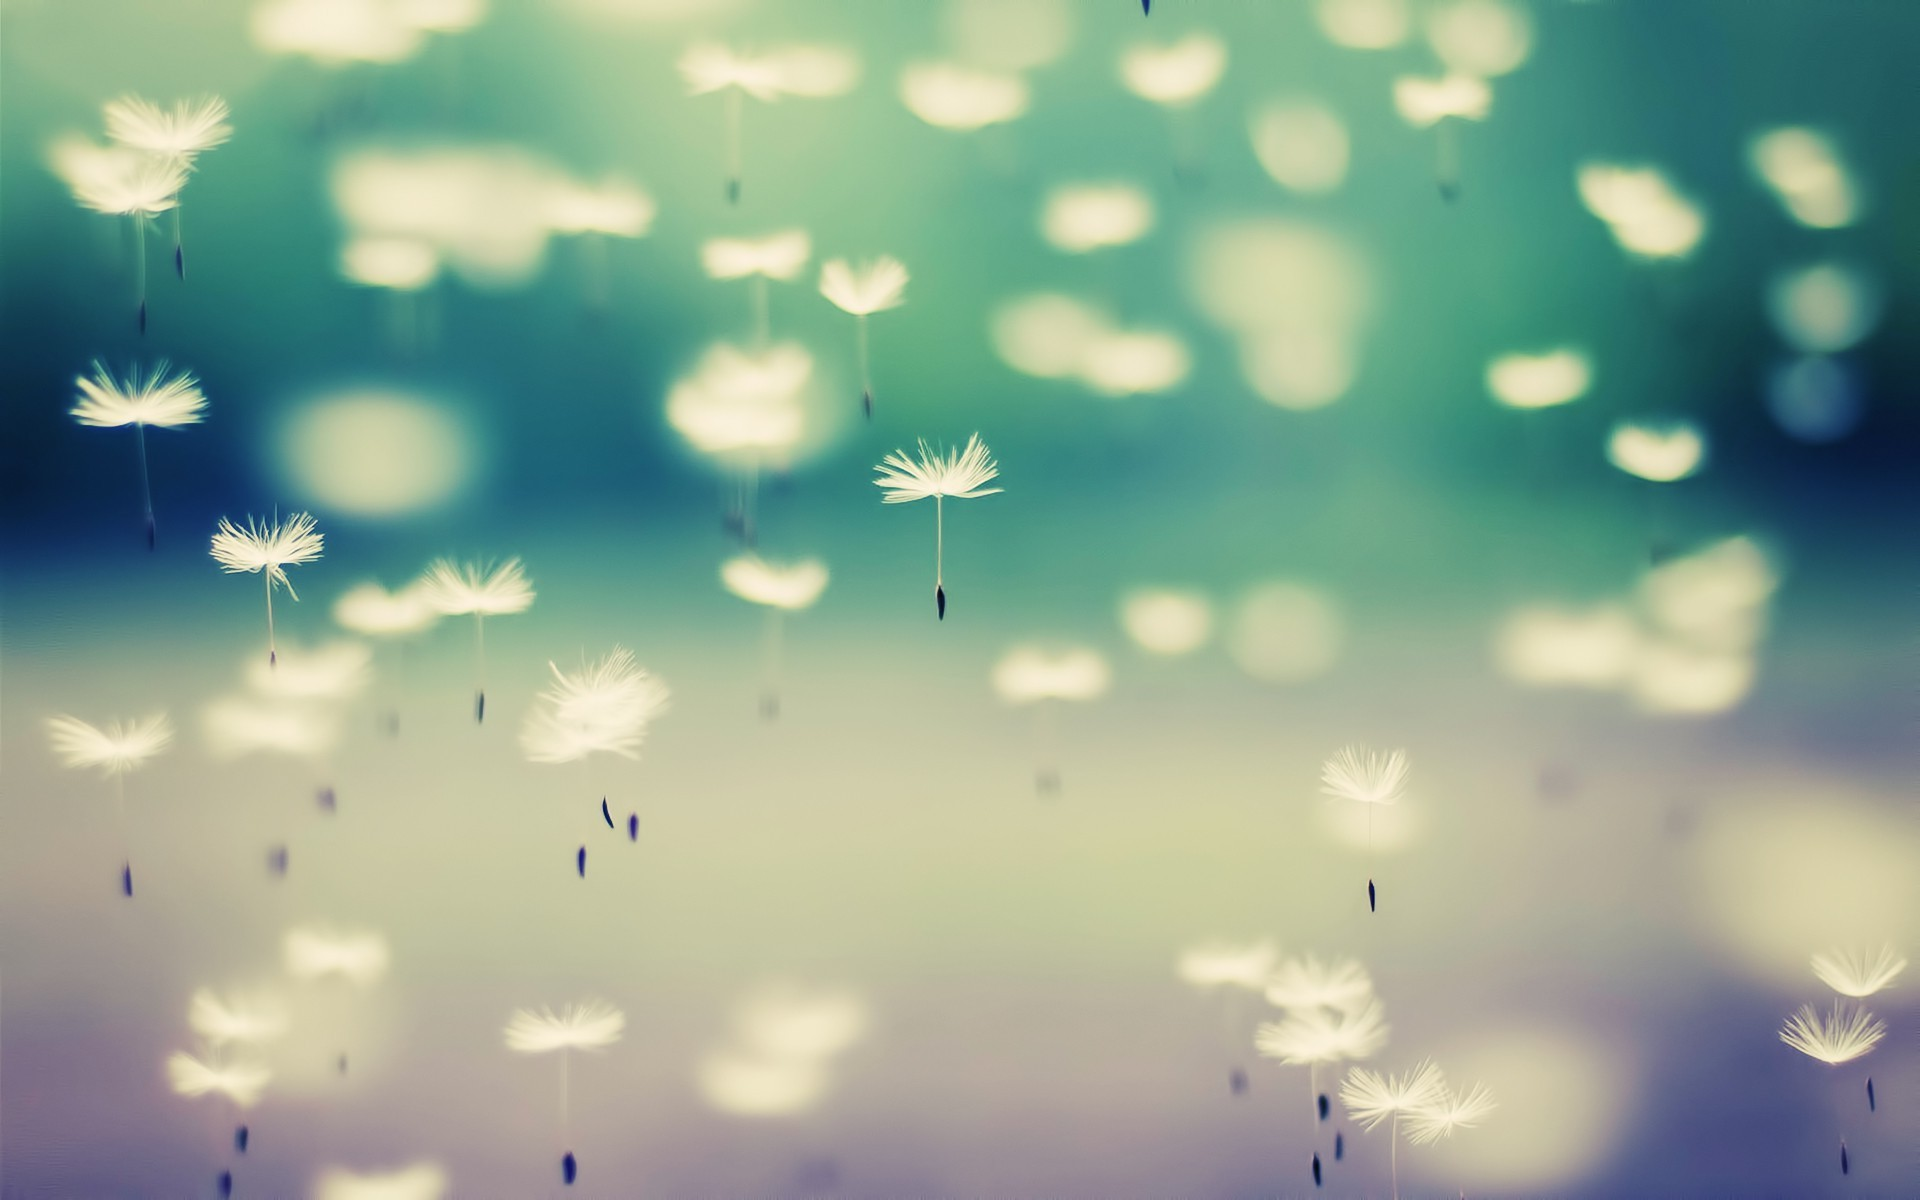 Love One Side Quotes Wallpaper Dandelion Flowers Floating Wallpapers Hd Desktop And